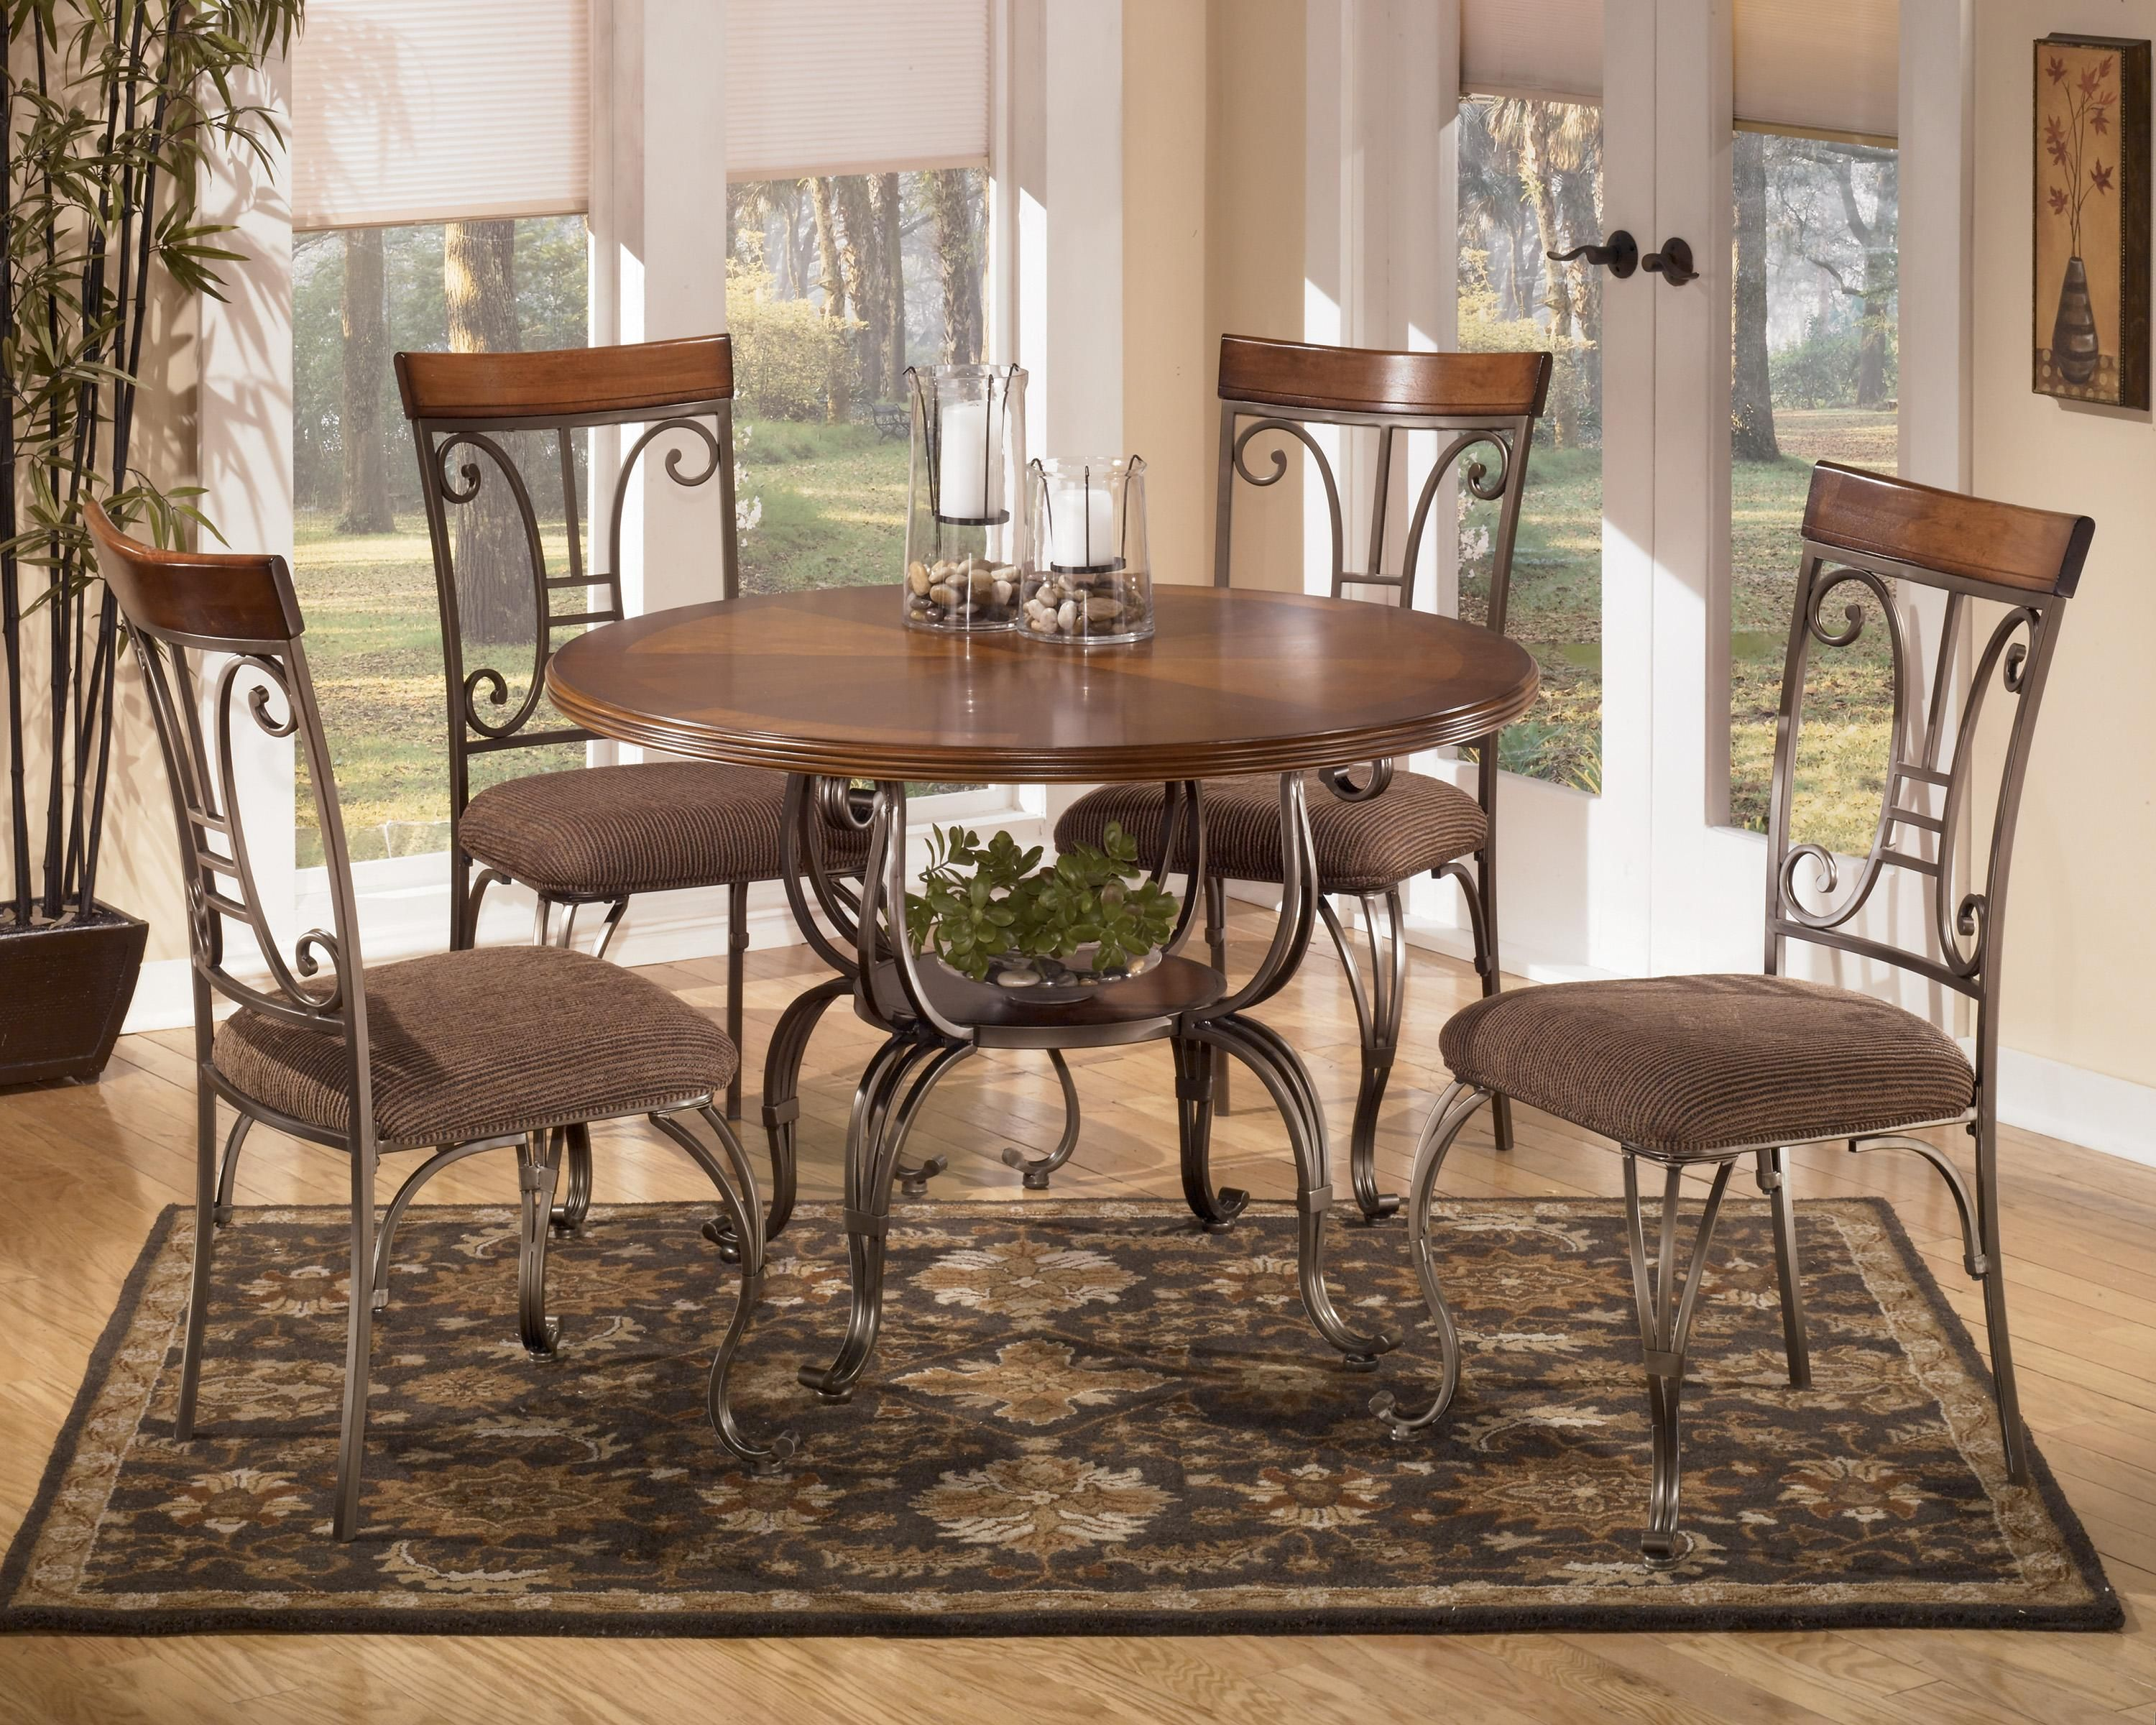 Plentywood 5Piece Round Dining Table Set by Signature